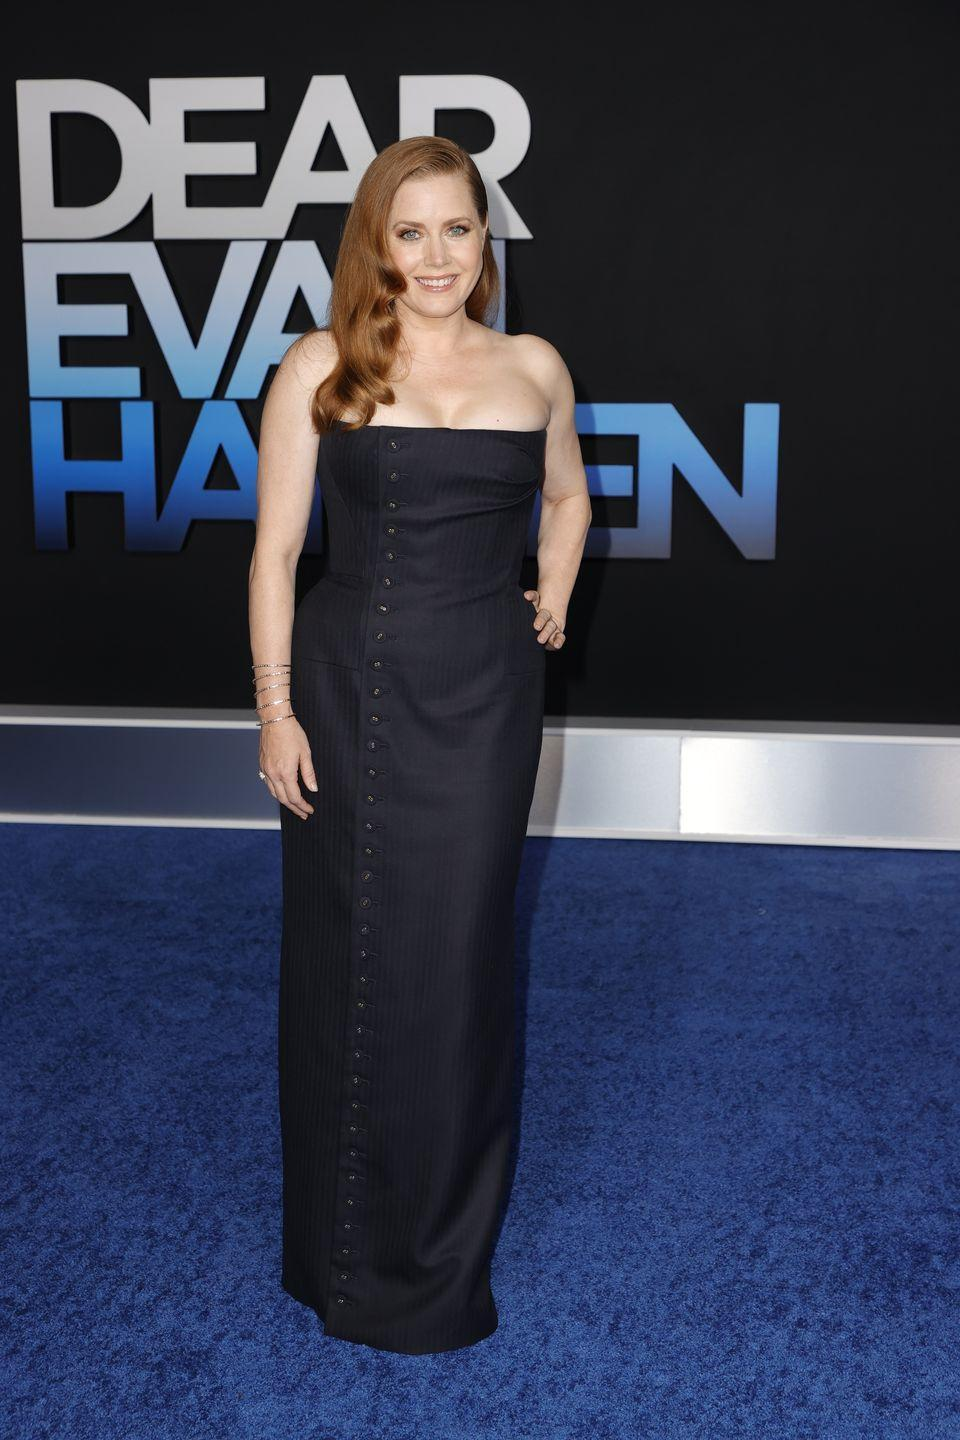 <p><strong>22 September</strong></p><p>Amy Adams wore a strapless Thom Browne dress to the premiere.</p>